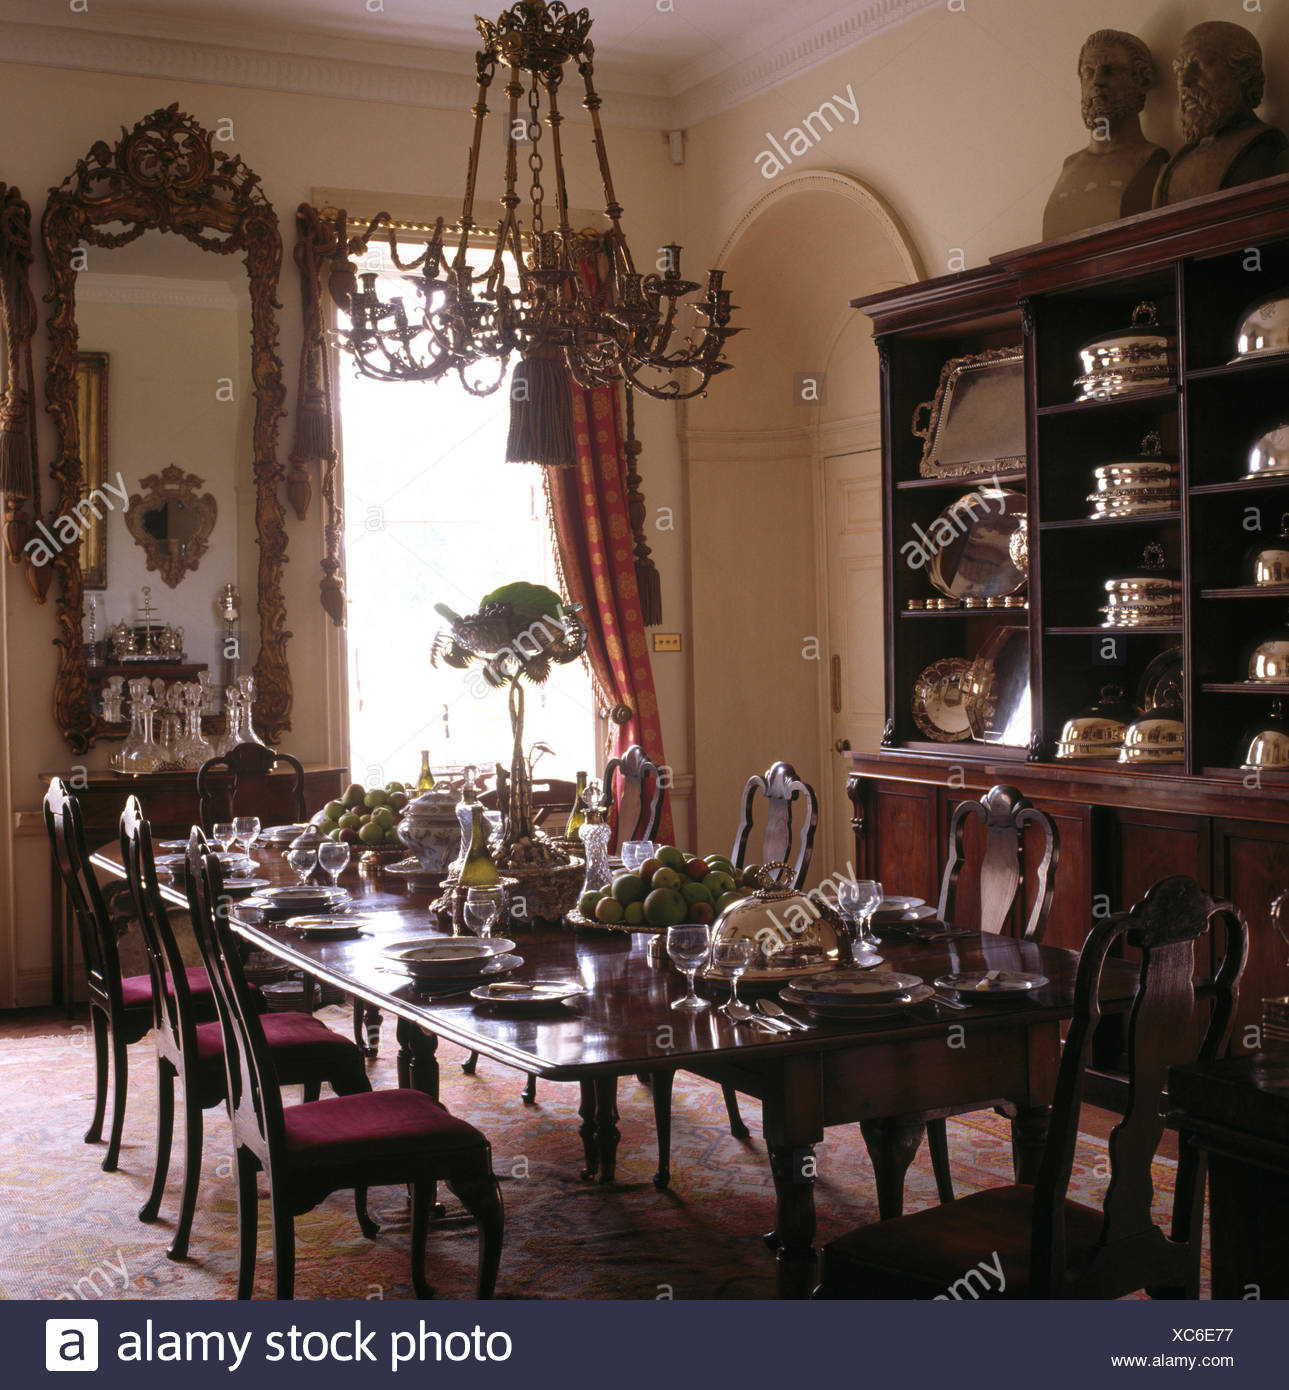 Picture of: Antique Furniture In Dining Room Of A Large Country House Stock Photo Alamy